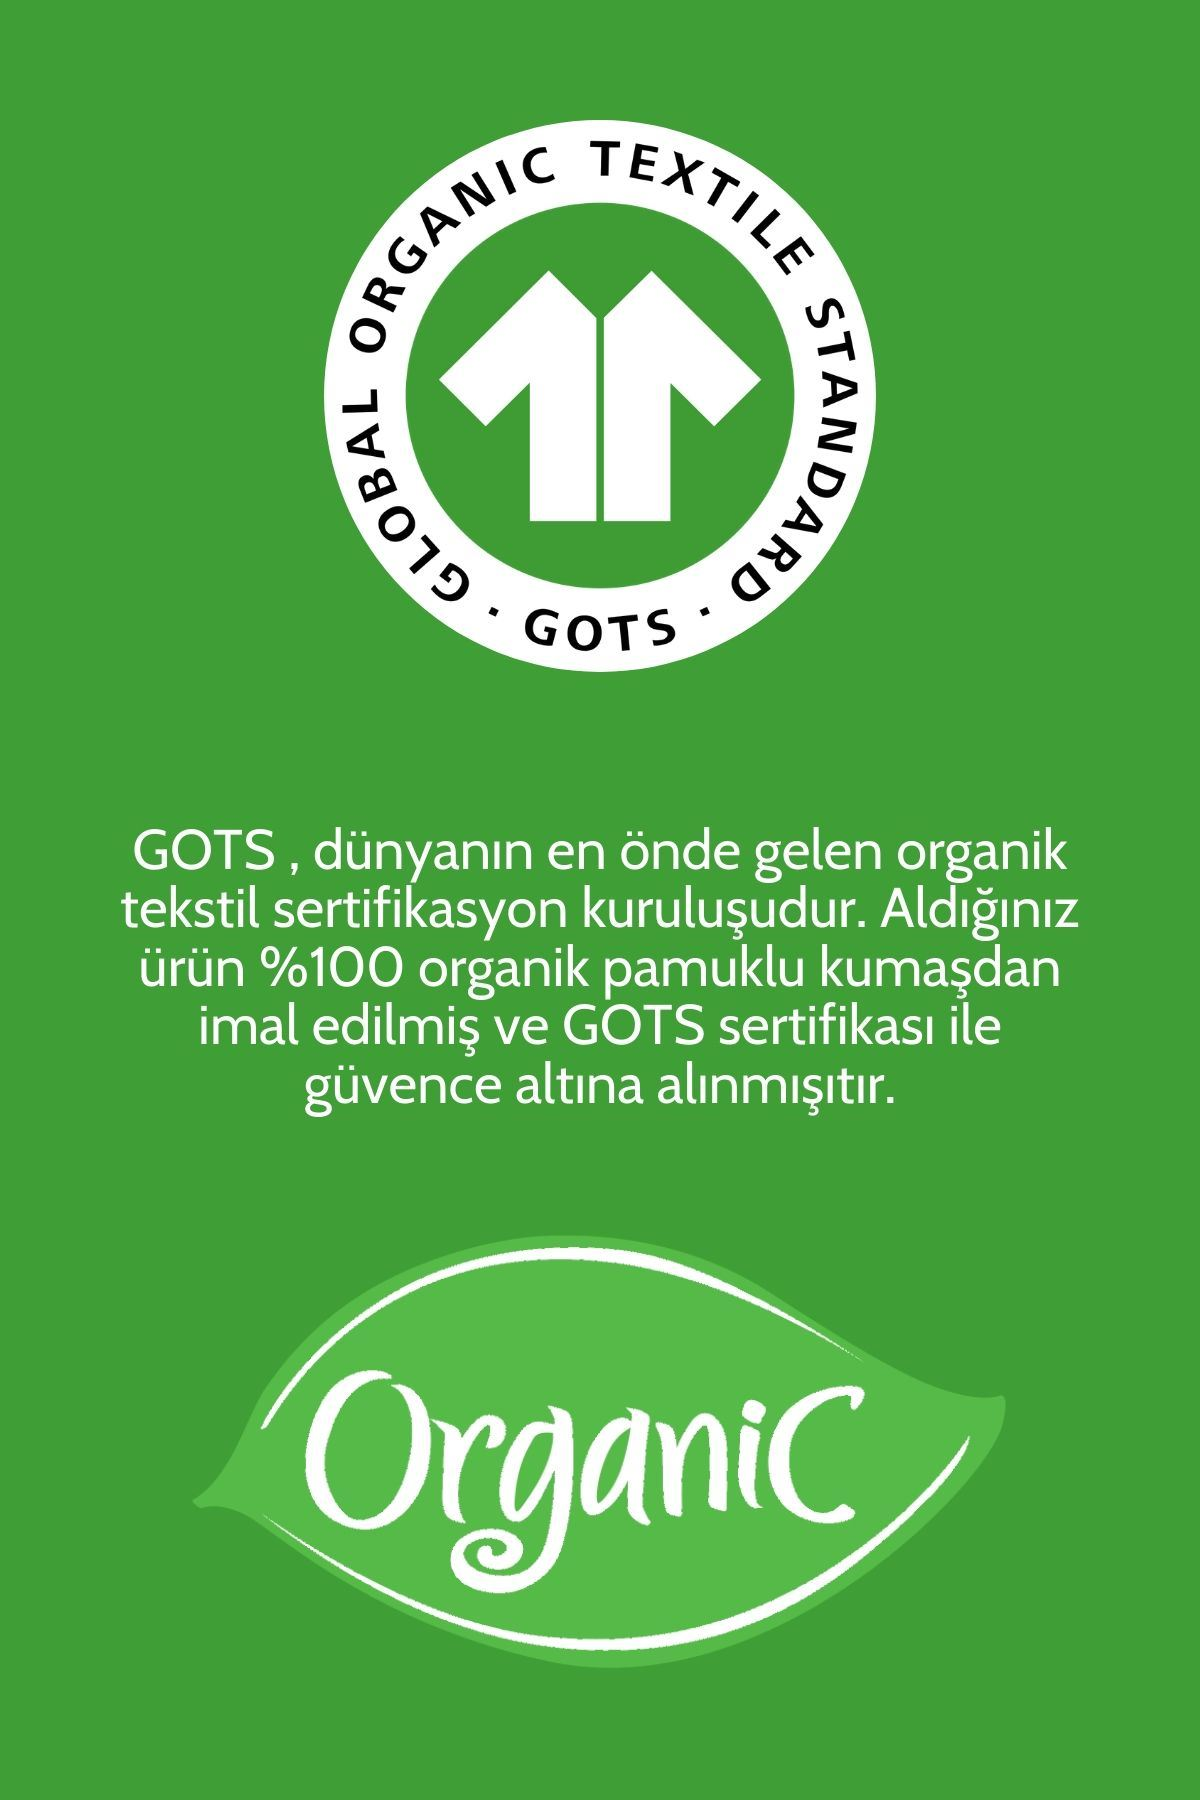 Dogs Organik Body (9-36 Ay Arası)